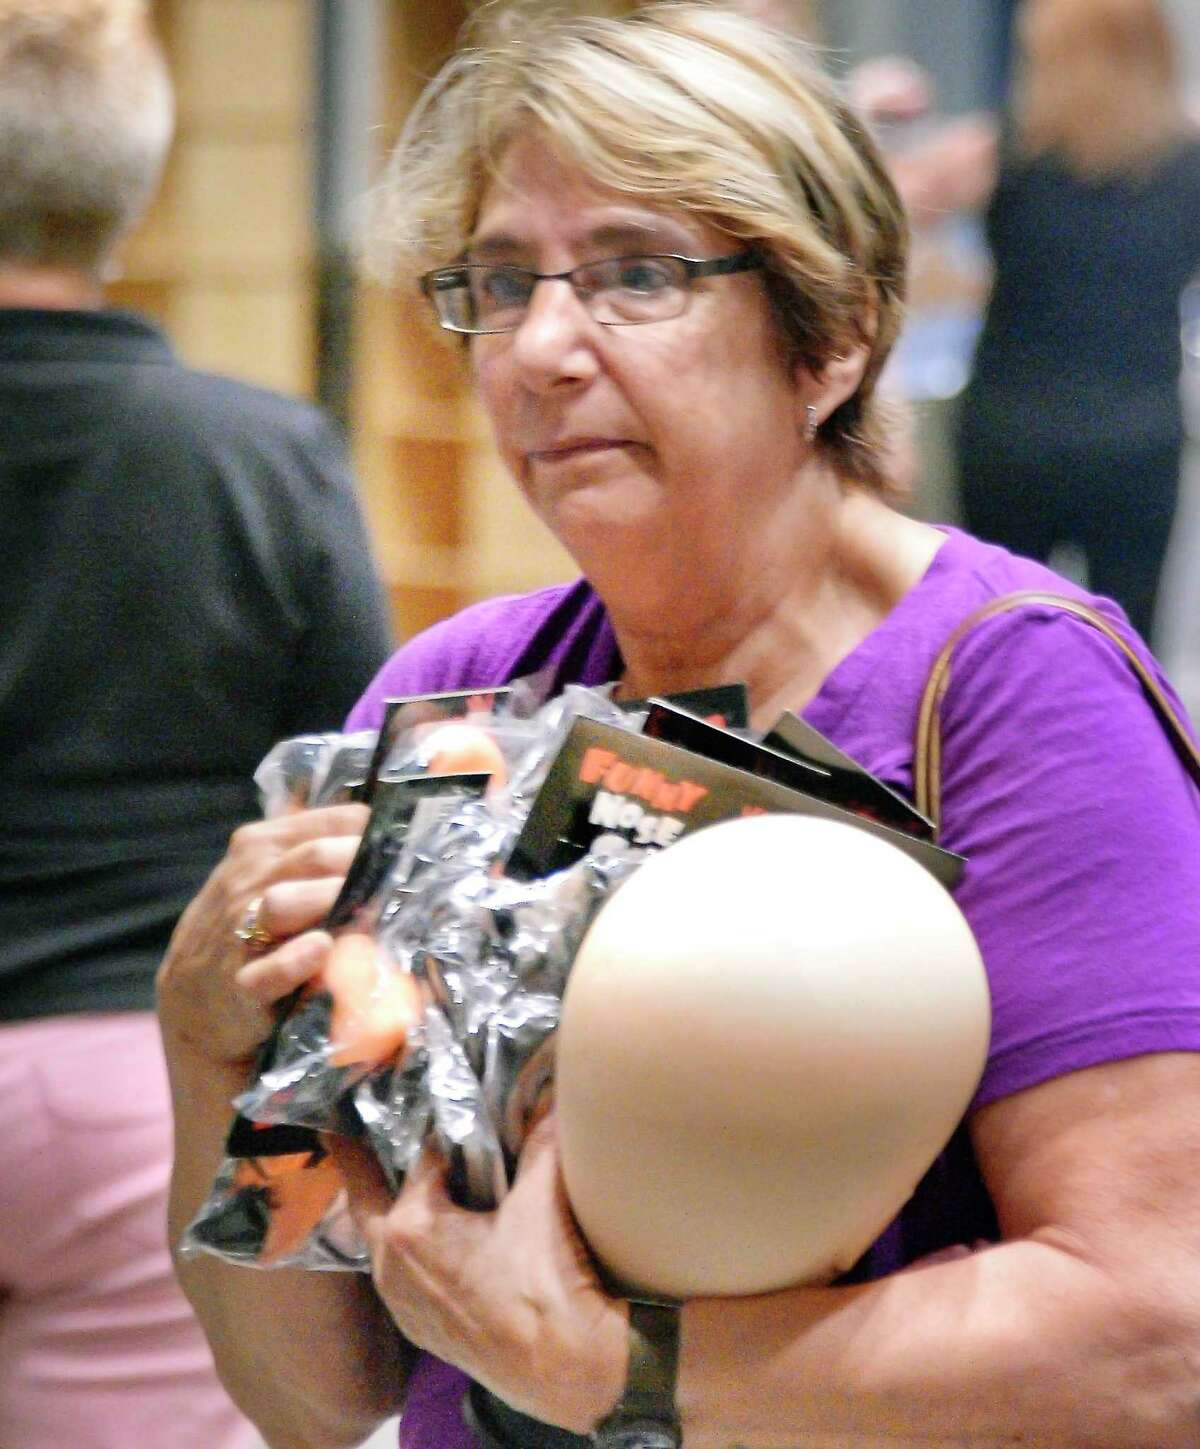 Janet Helstowski of Niskayuna has her hands full during the Proctors Clearance Sale in Key Hall Tuesday July 10, 2018 in Schenectady, NY. (John Carl D'Annibale/Times Union)